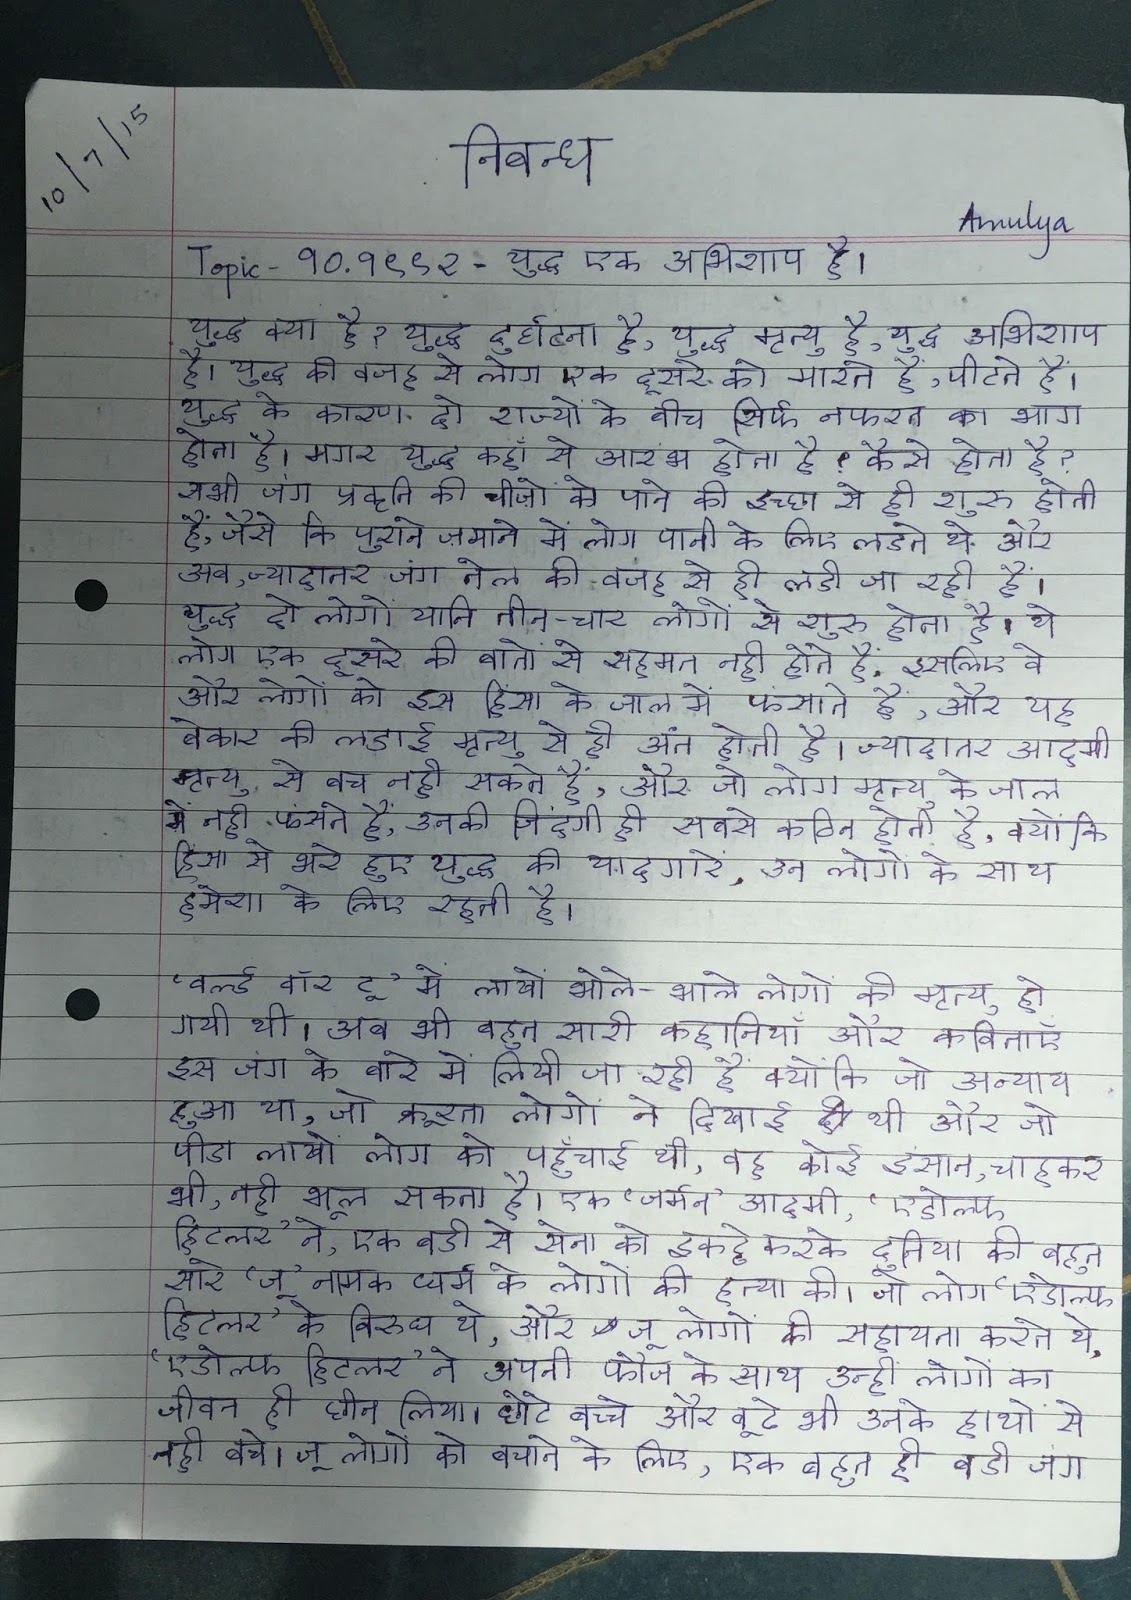 enron essay case study the enron accounting scandal literature  short essay on mera bharat mahan short essay on mera bharat mahan